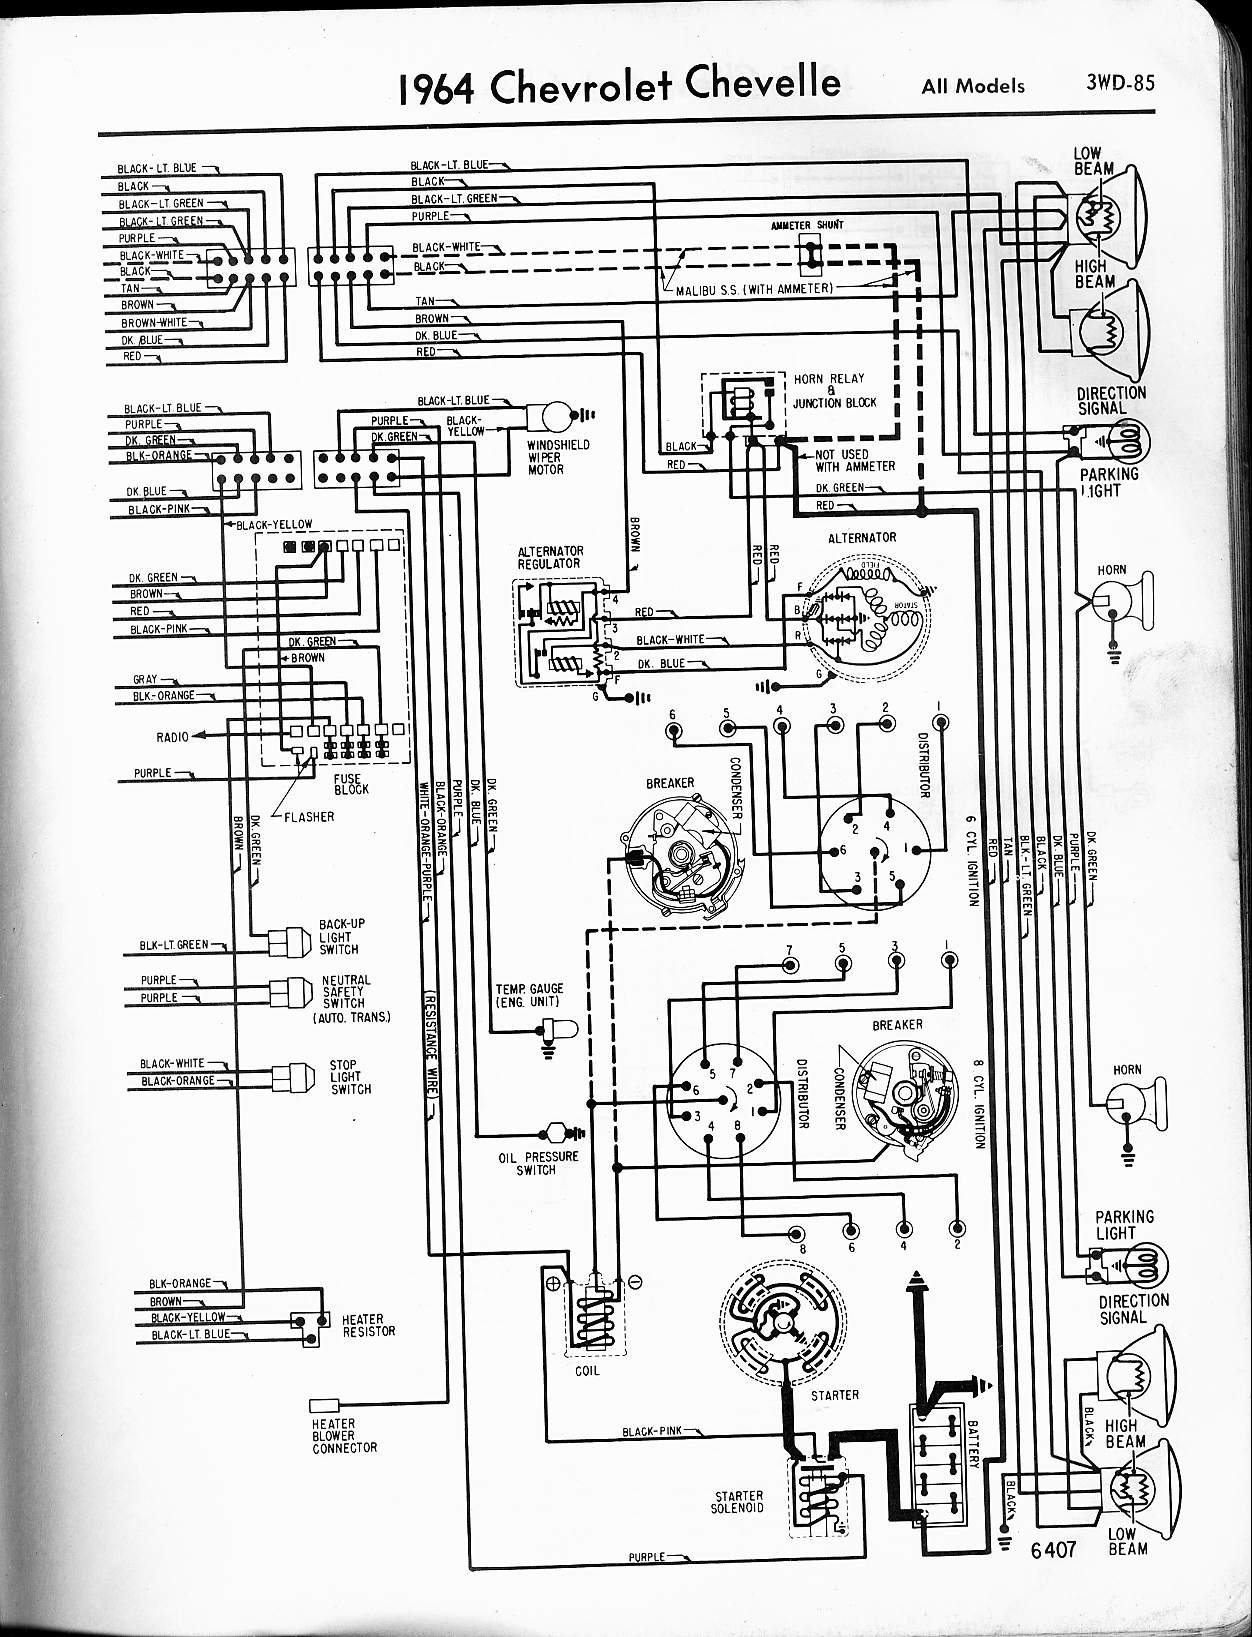 65 Comet Headlight Circuit Diagram Wiring Will Be A Thing 63 Falcon Lights 1968 Impala Simple Rh David Huggett Co Uk Basic